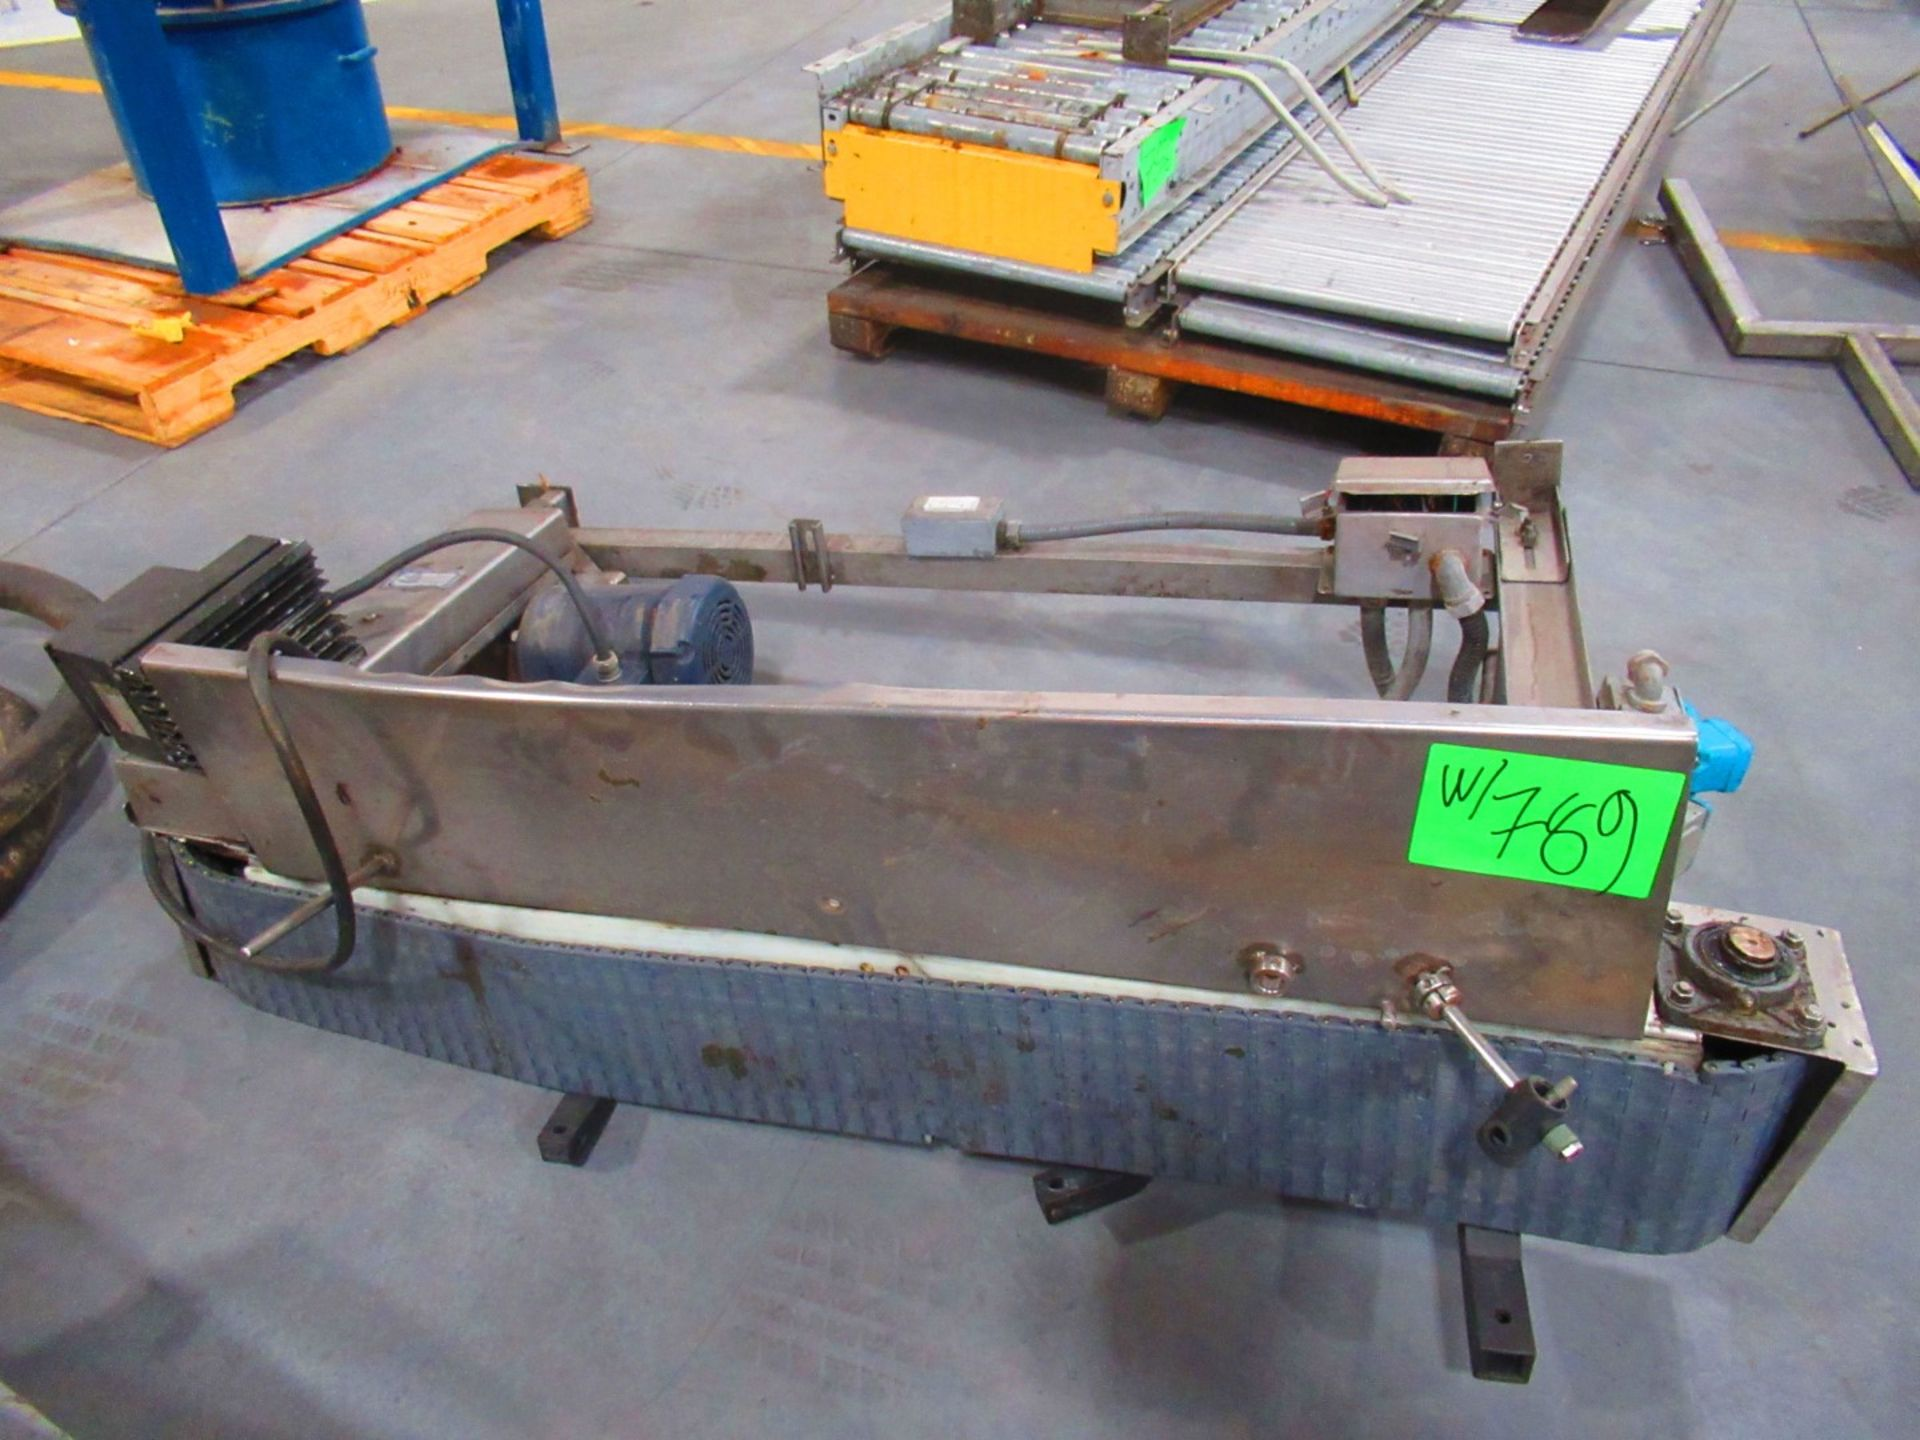 Conveyors - Image 6 of 7